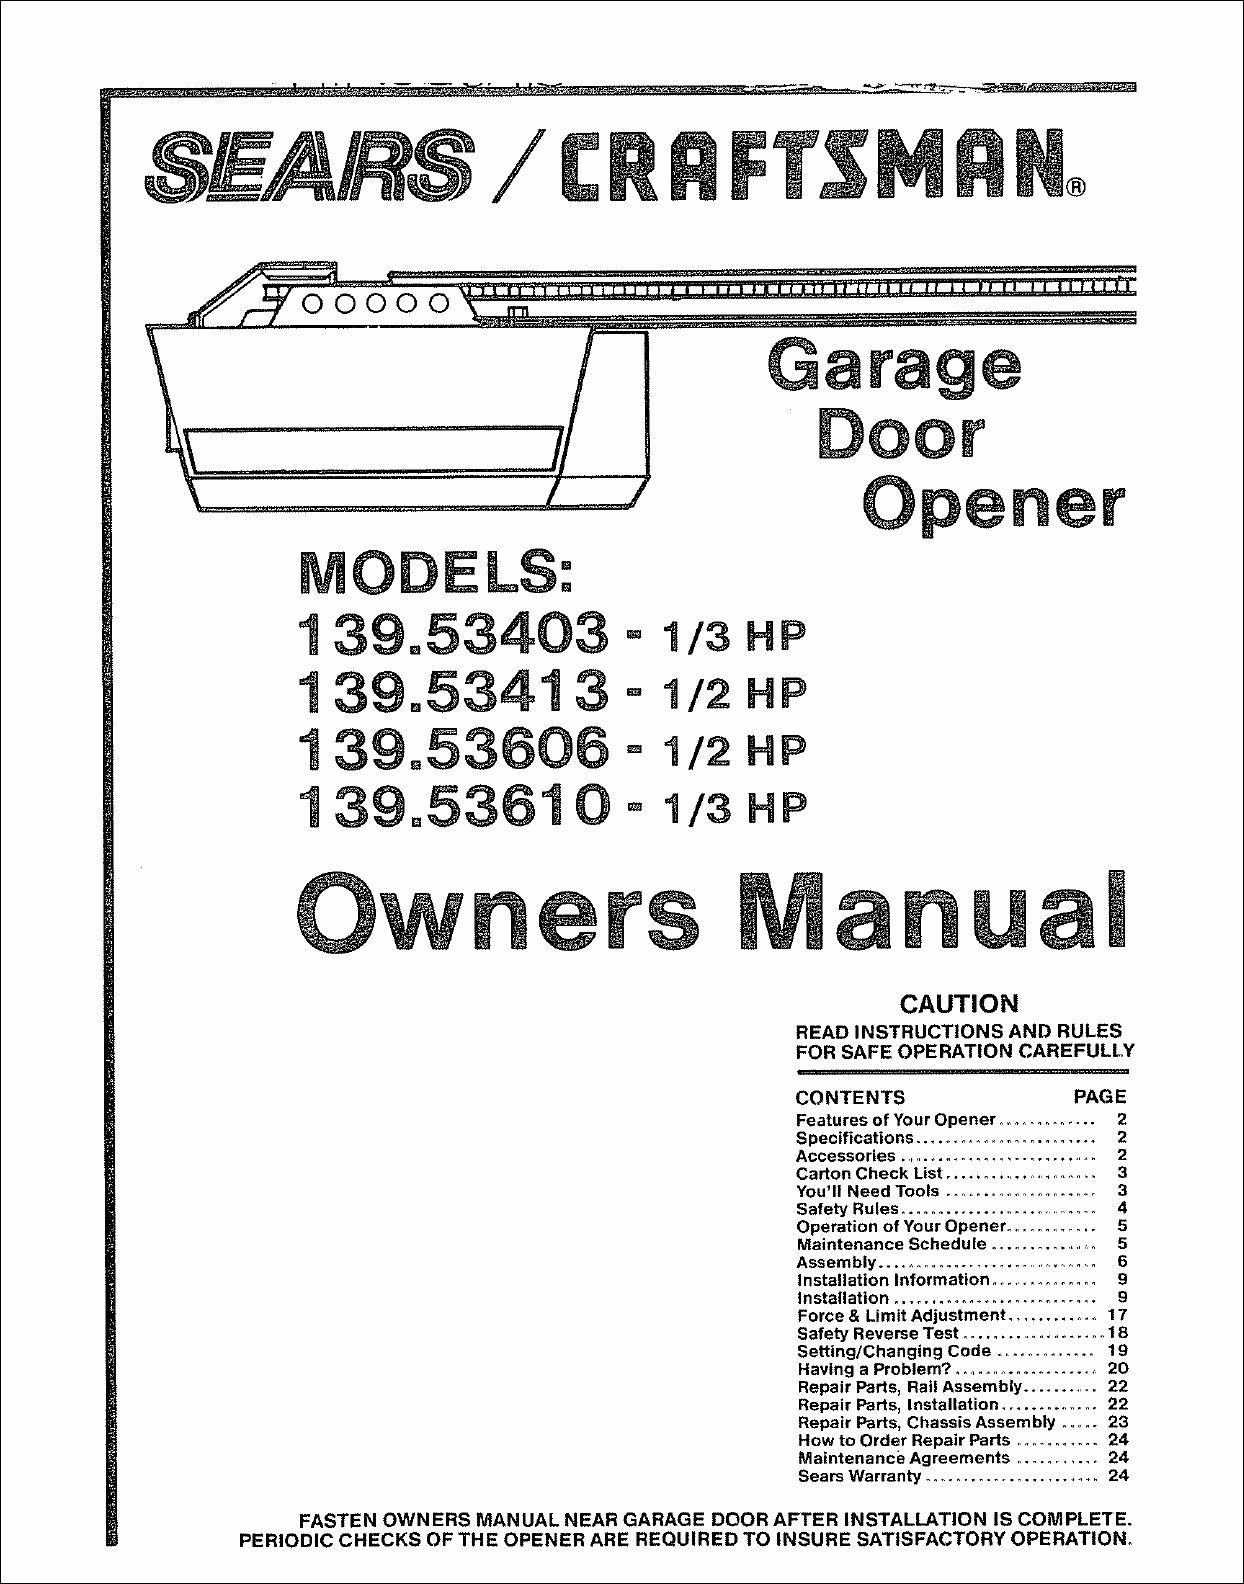 unique wiring diagram garage door motor diagram diagramsample wiring diagram craftsman door opener wiring diagram for craftsman door opener [ 1244 x 1584 Pixel ]